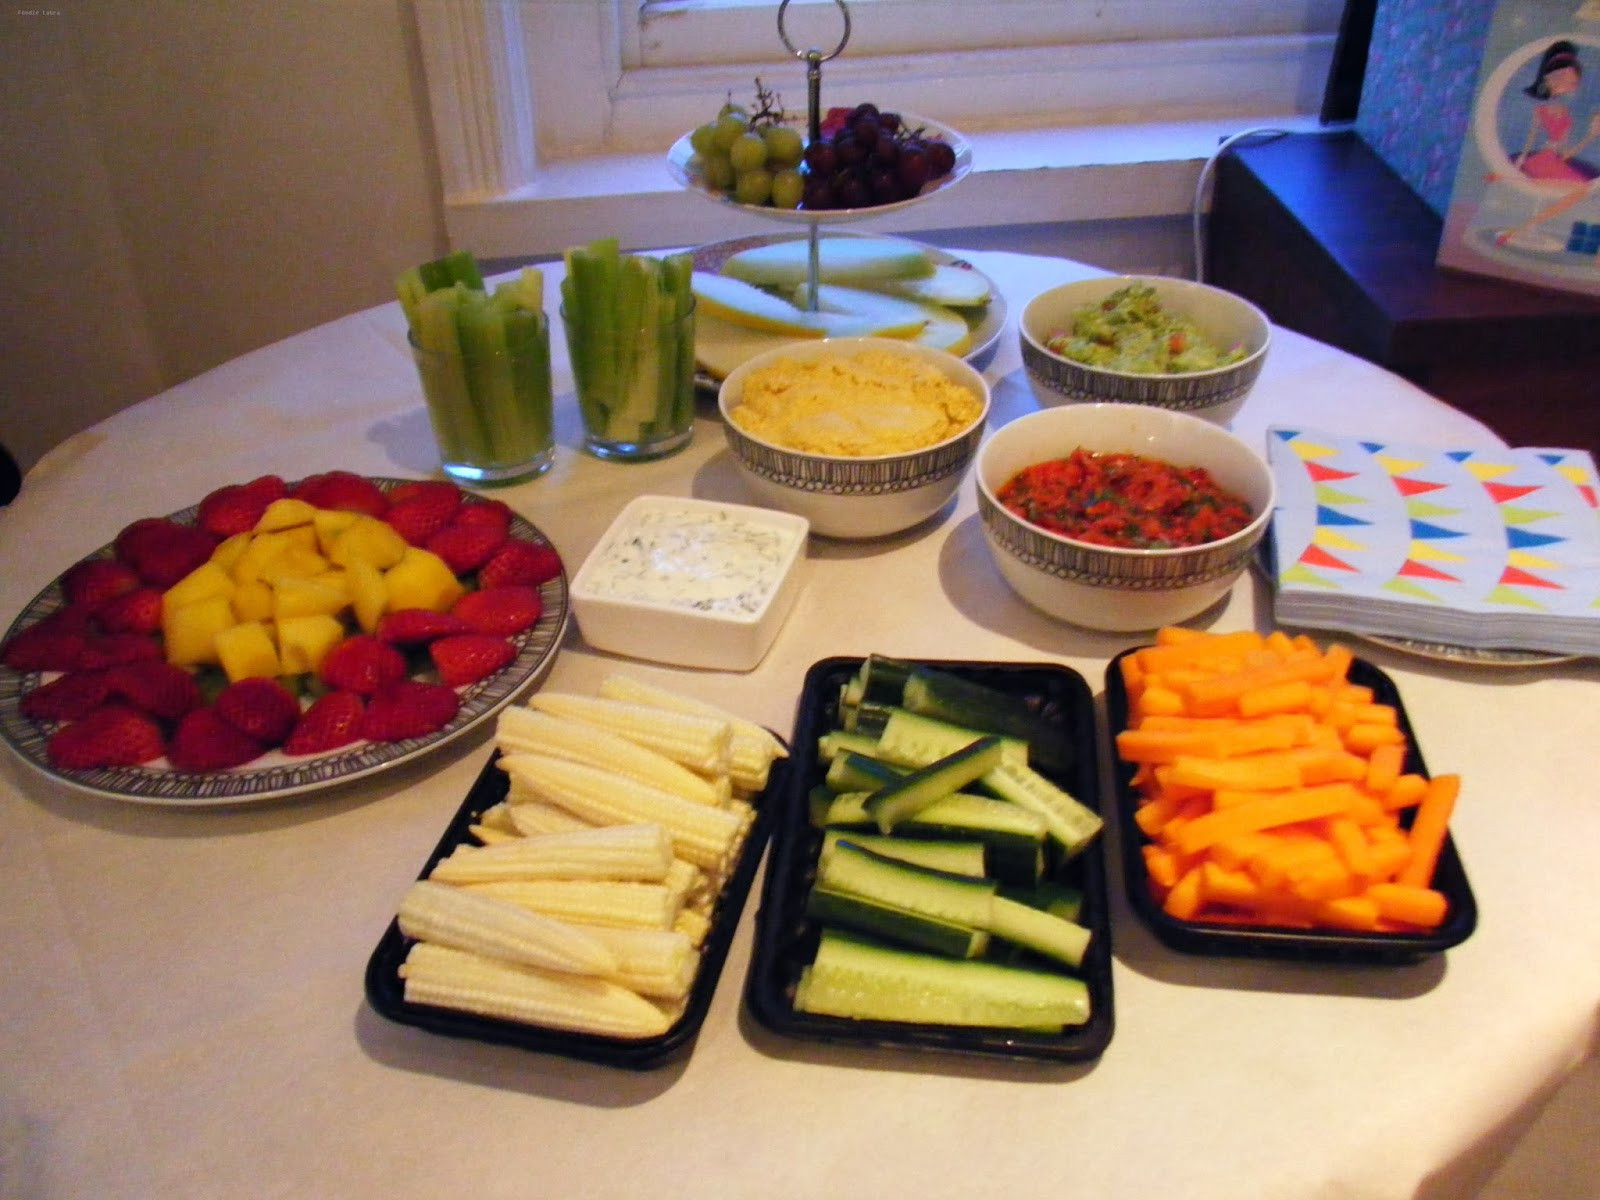 Healthy Snacks For Parties  Healthy Party Foods Ideas & Tips